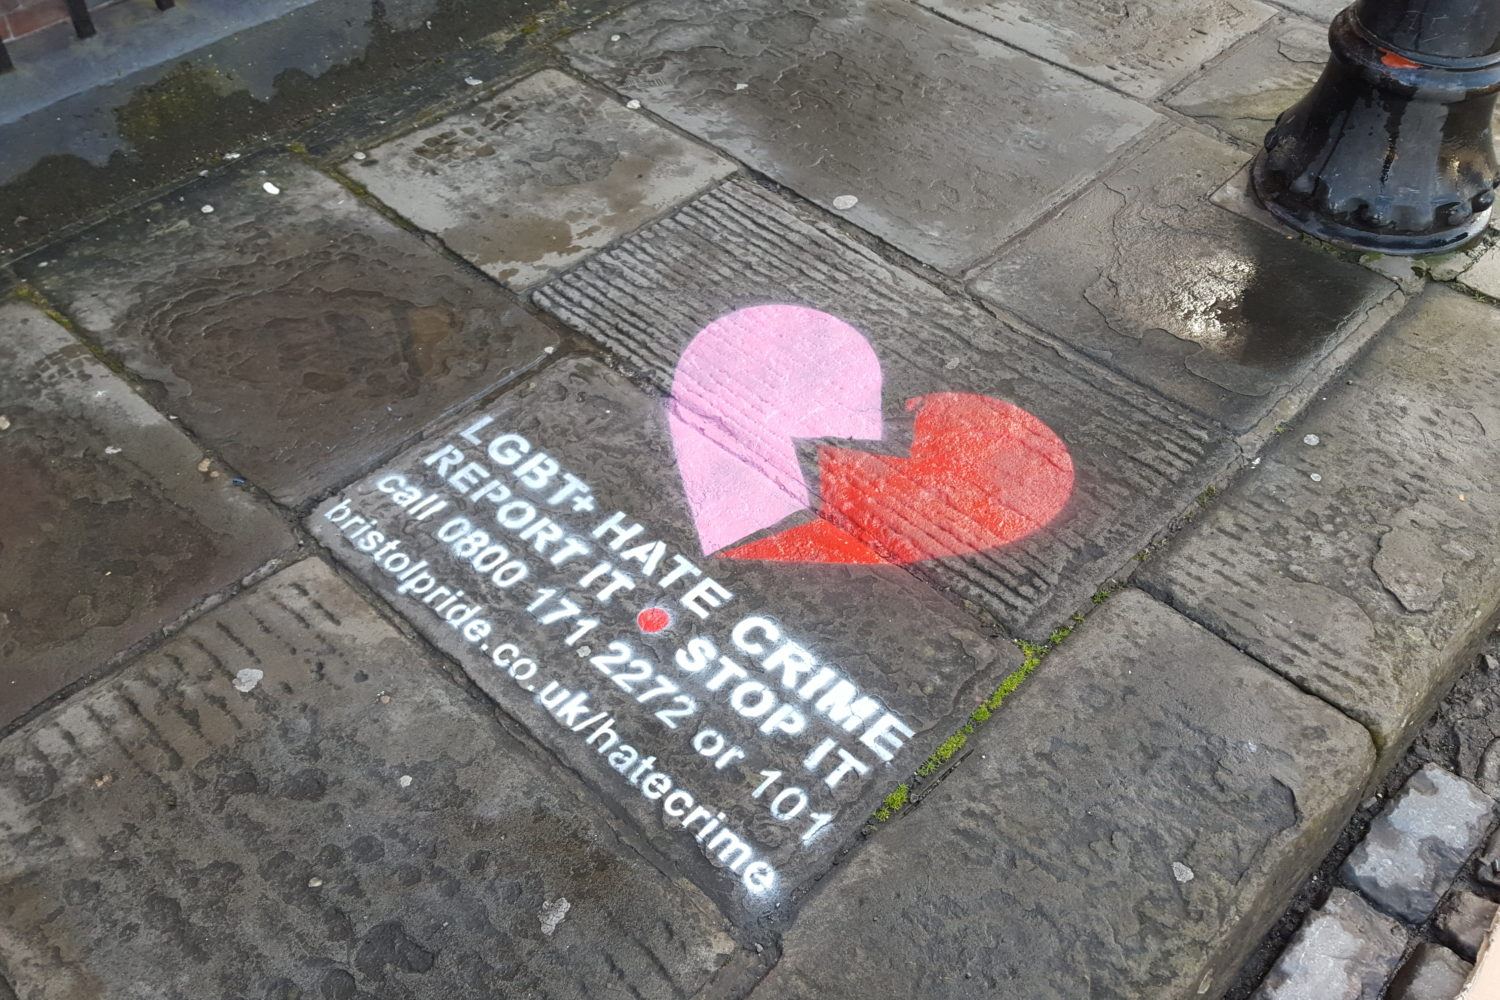 LGBT Hate Crime Stencil On Street